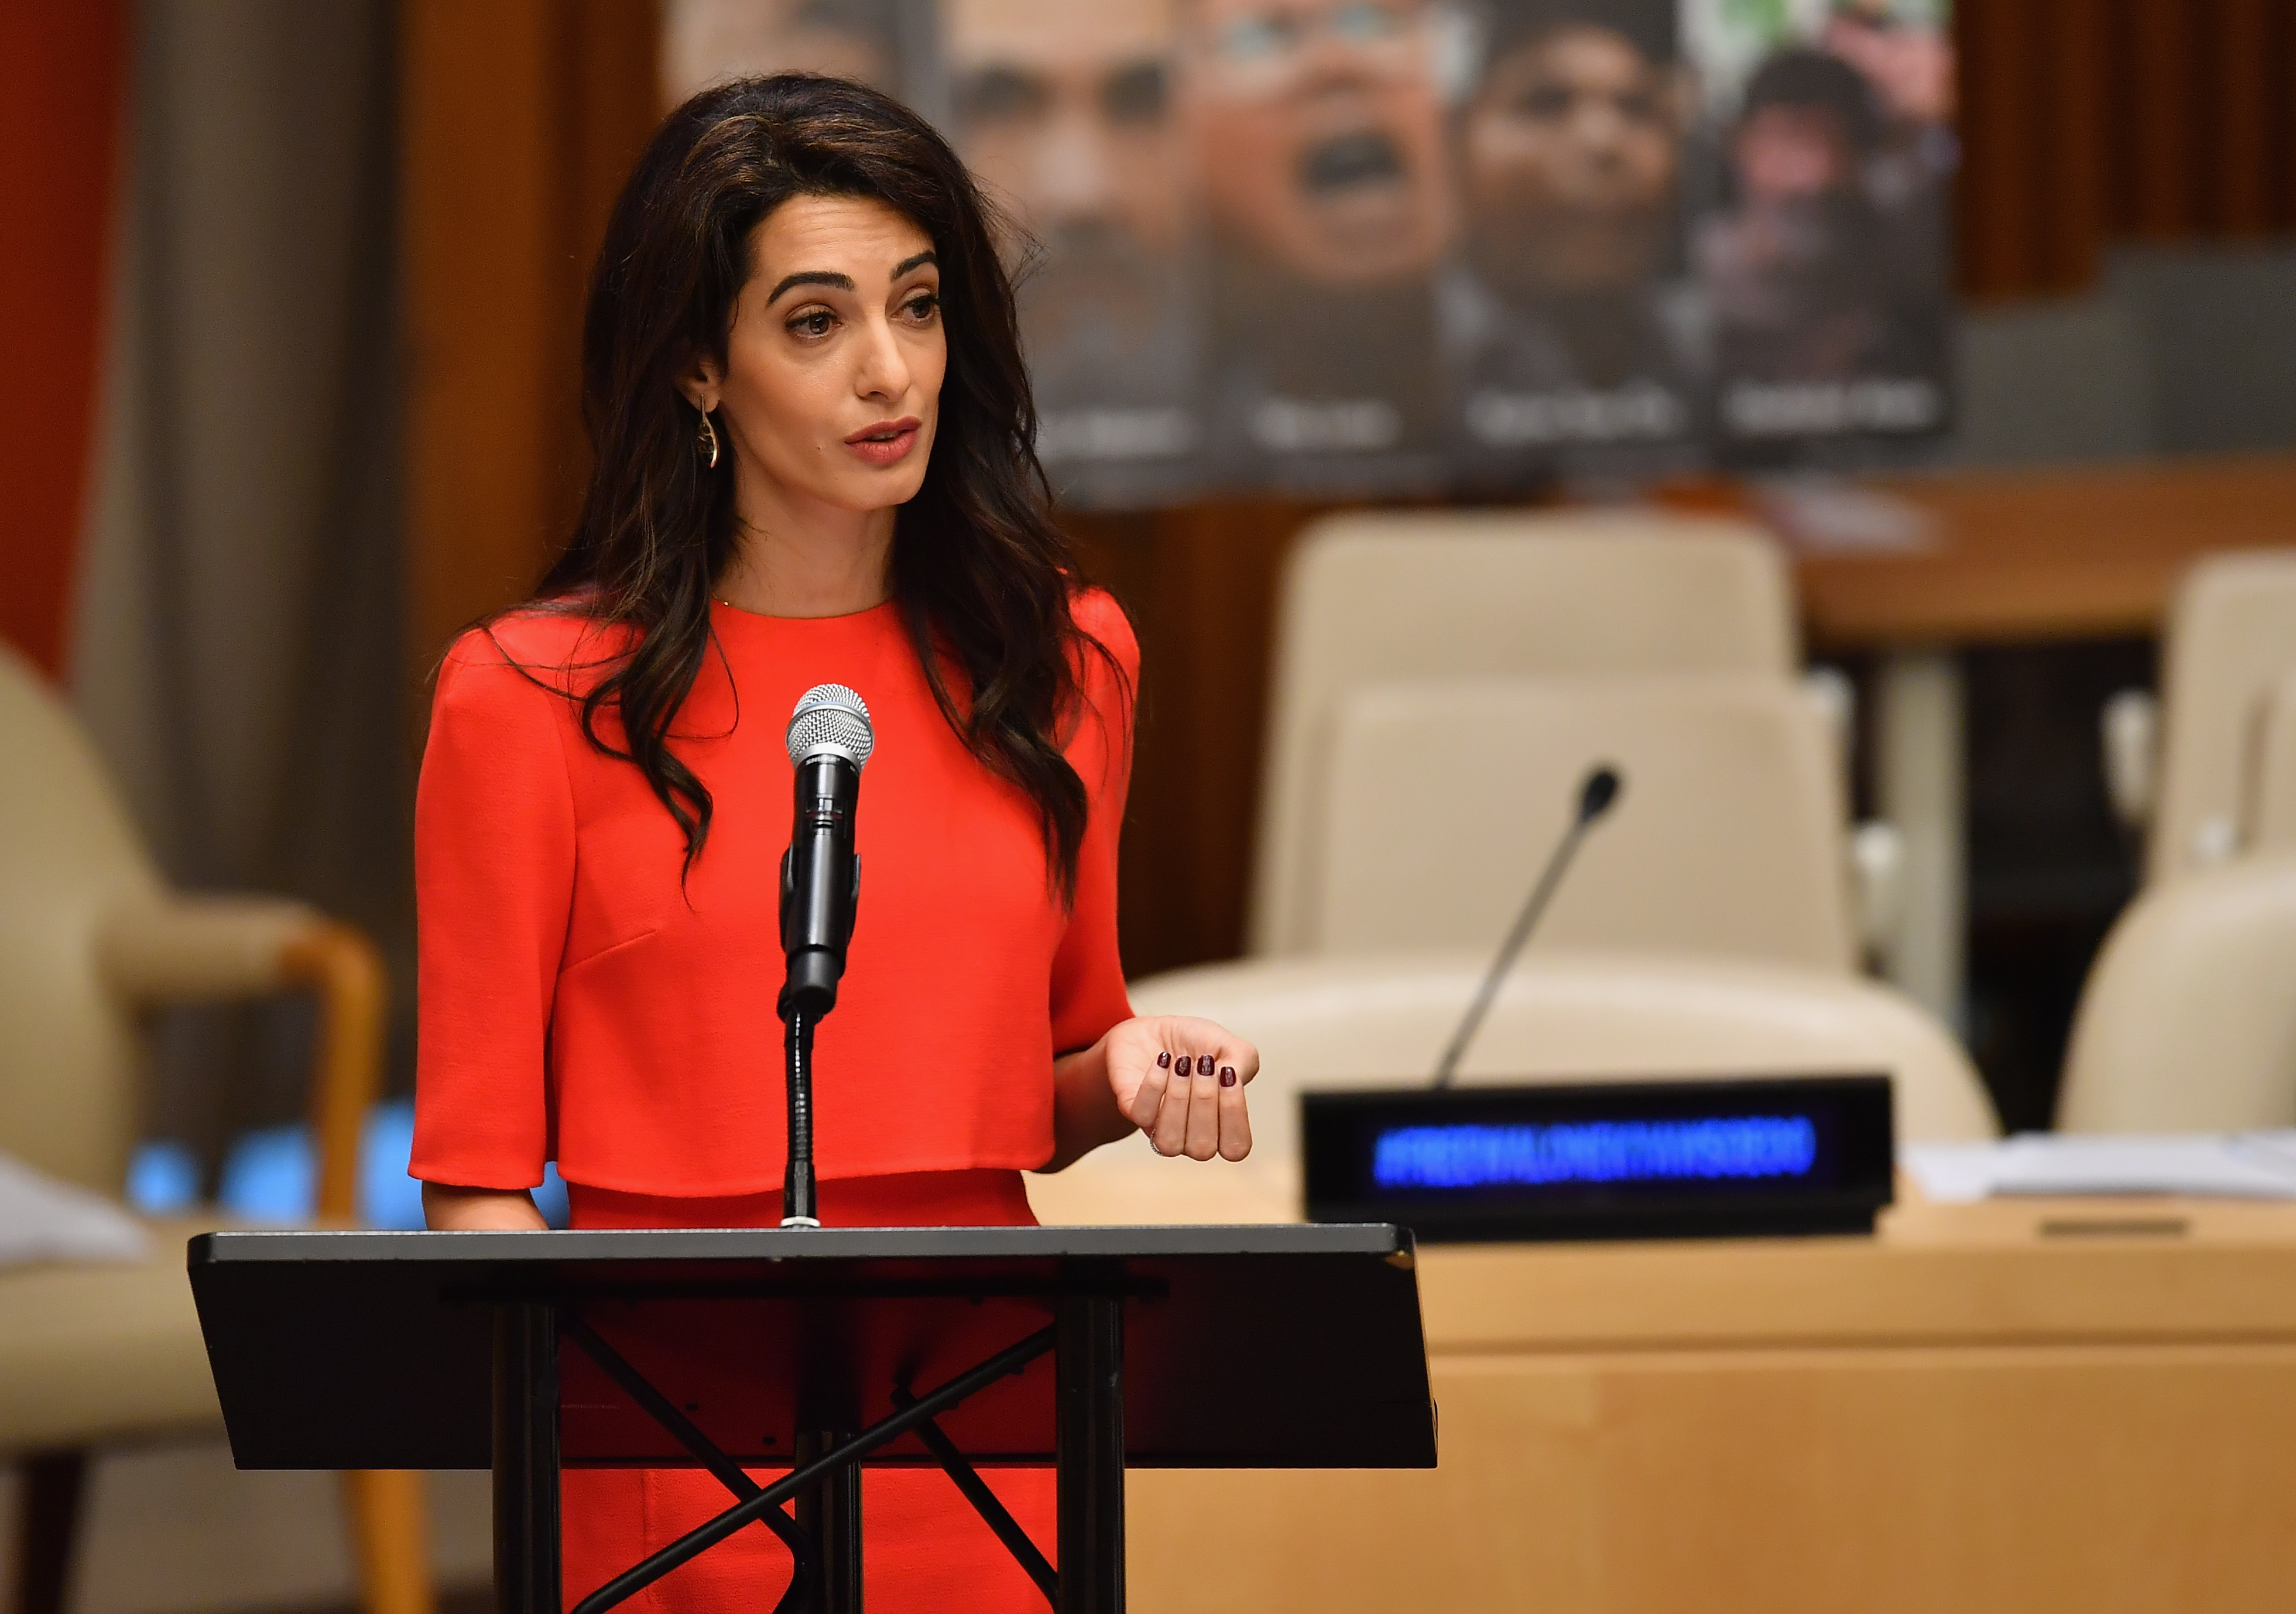 Amal Clooney speaks about journalists imprisoned in Myanmar at the Press Behind Bars: Undermining Justice and Democracy event during the 73rd session of the United Nations General Assembly at the United Nations in New York on Sept. 28, 2018.